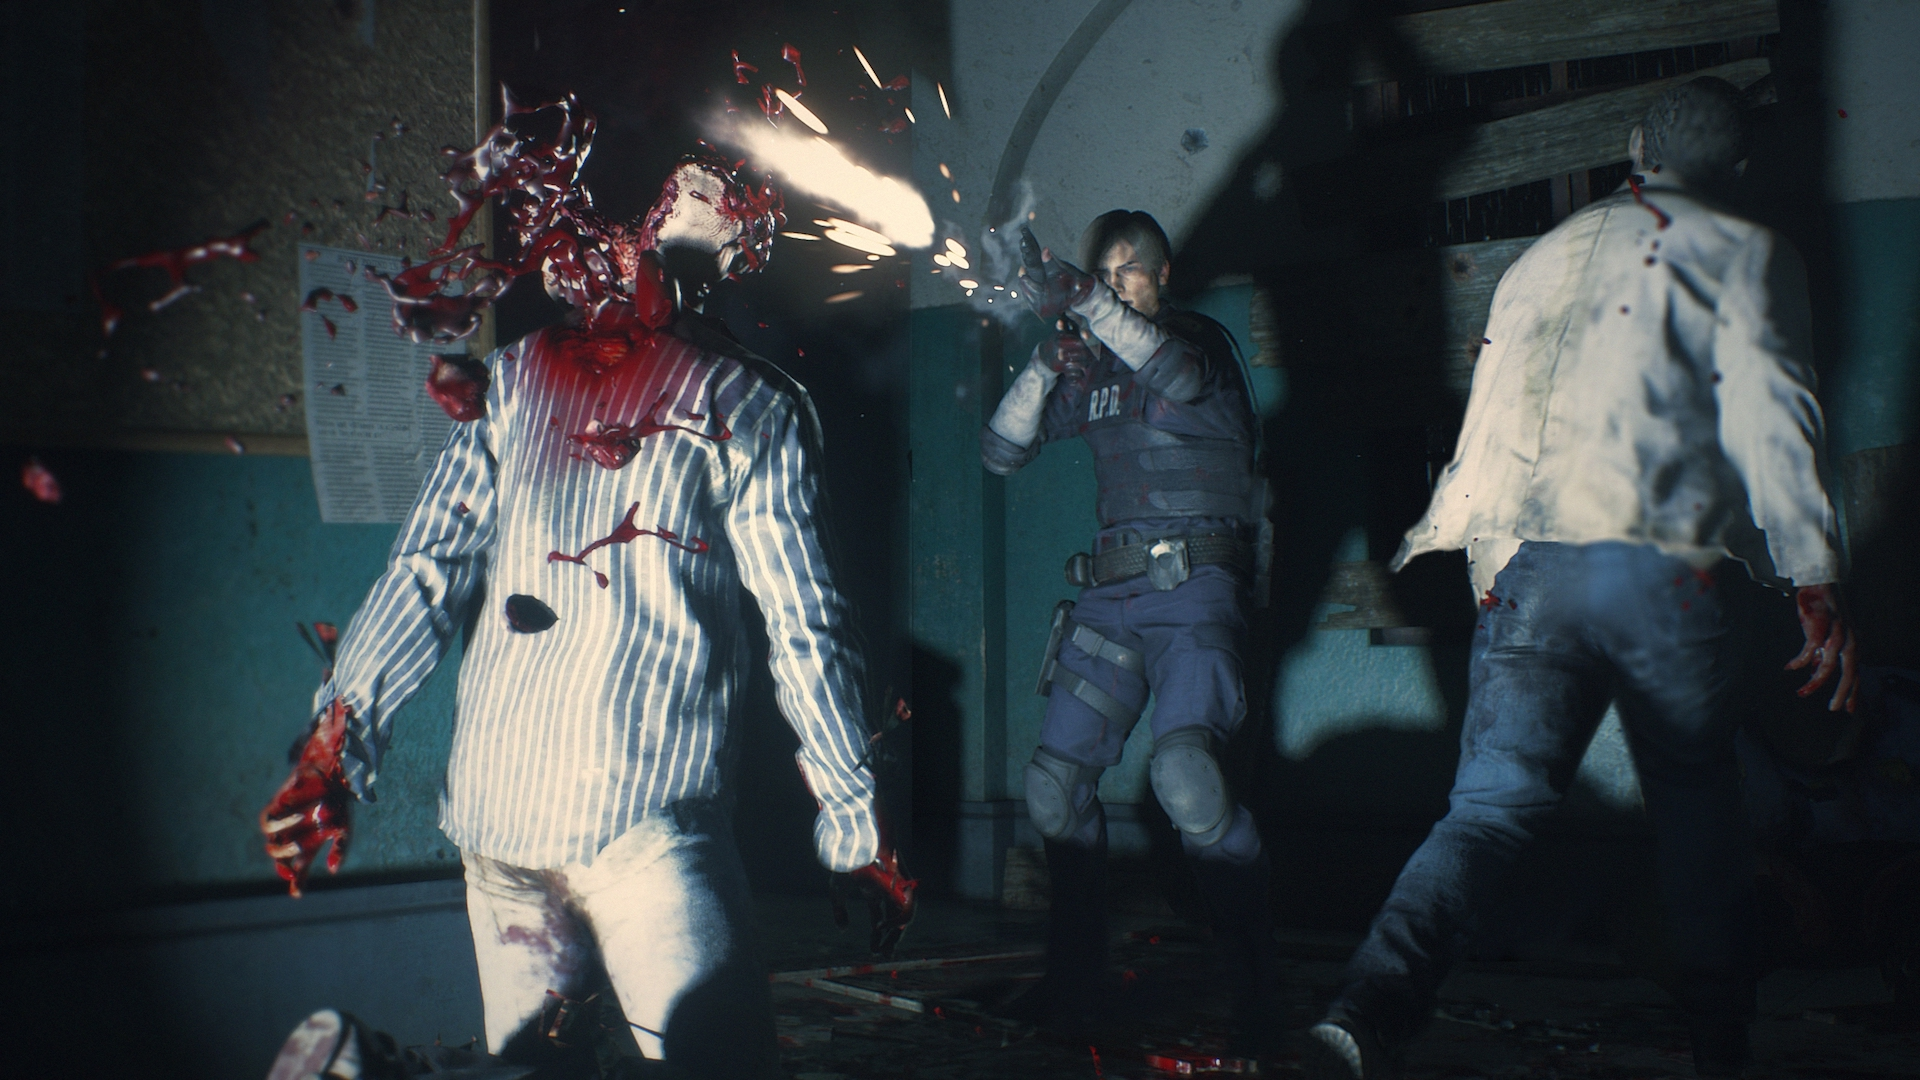 Final Fantasy 7 Remake And Resident Evil 2 Rank High In